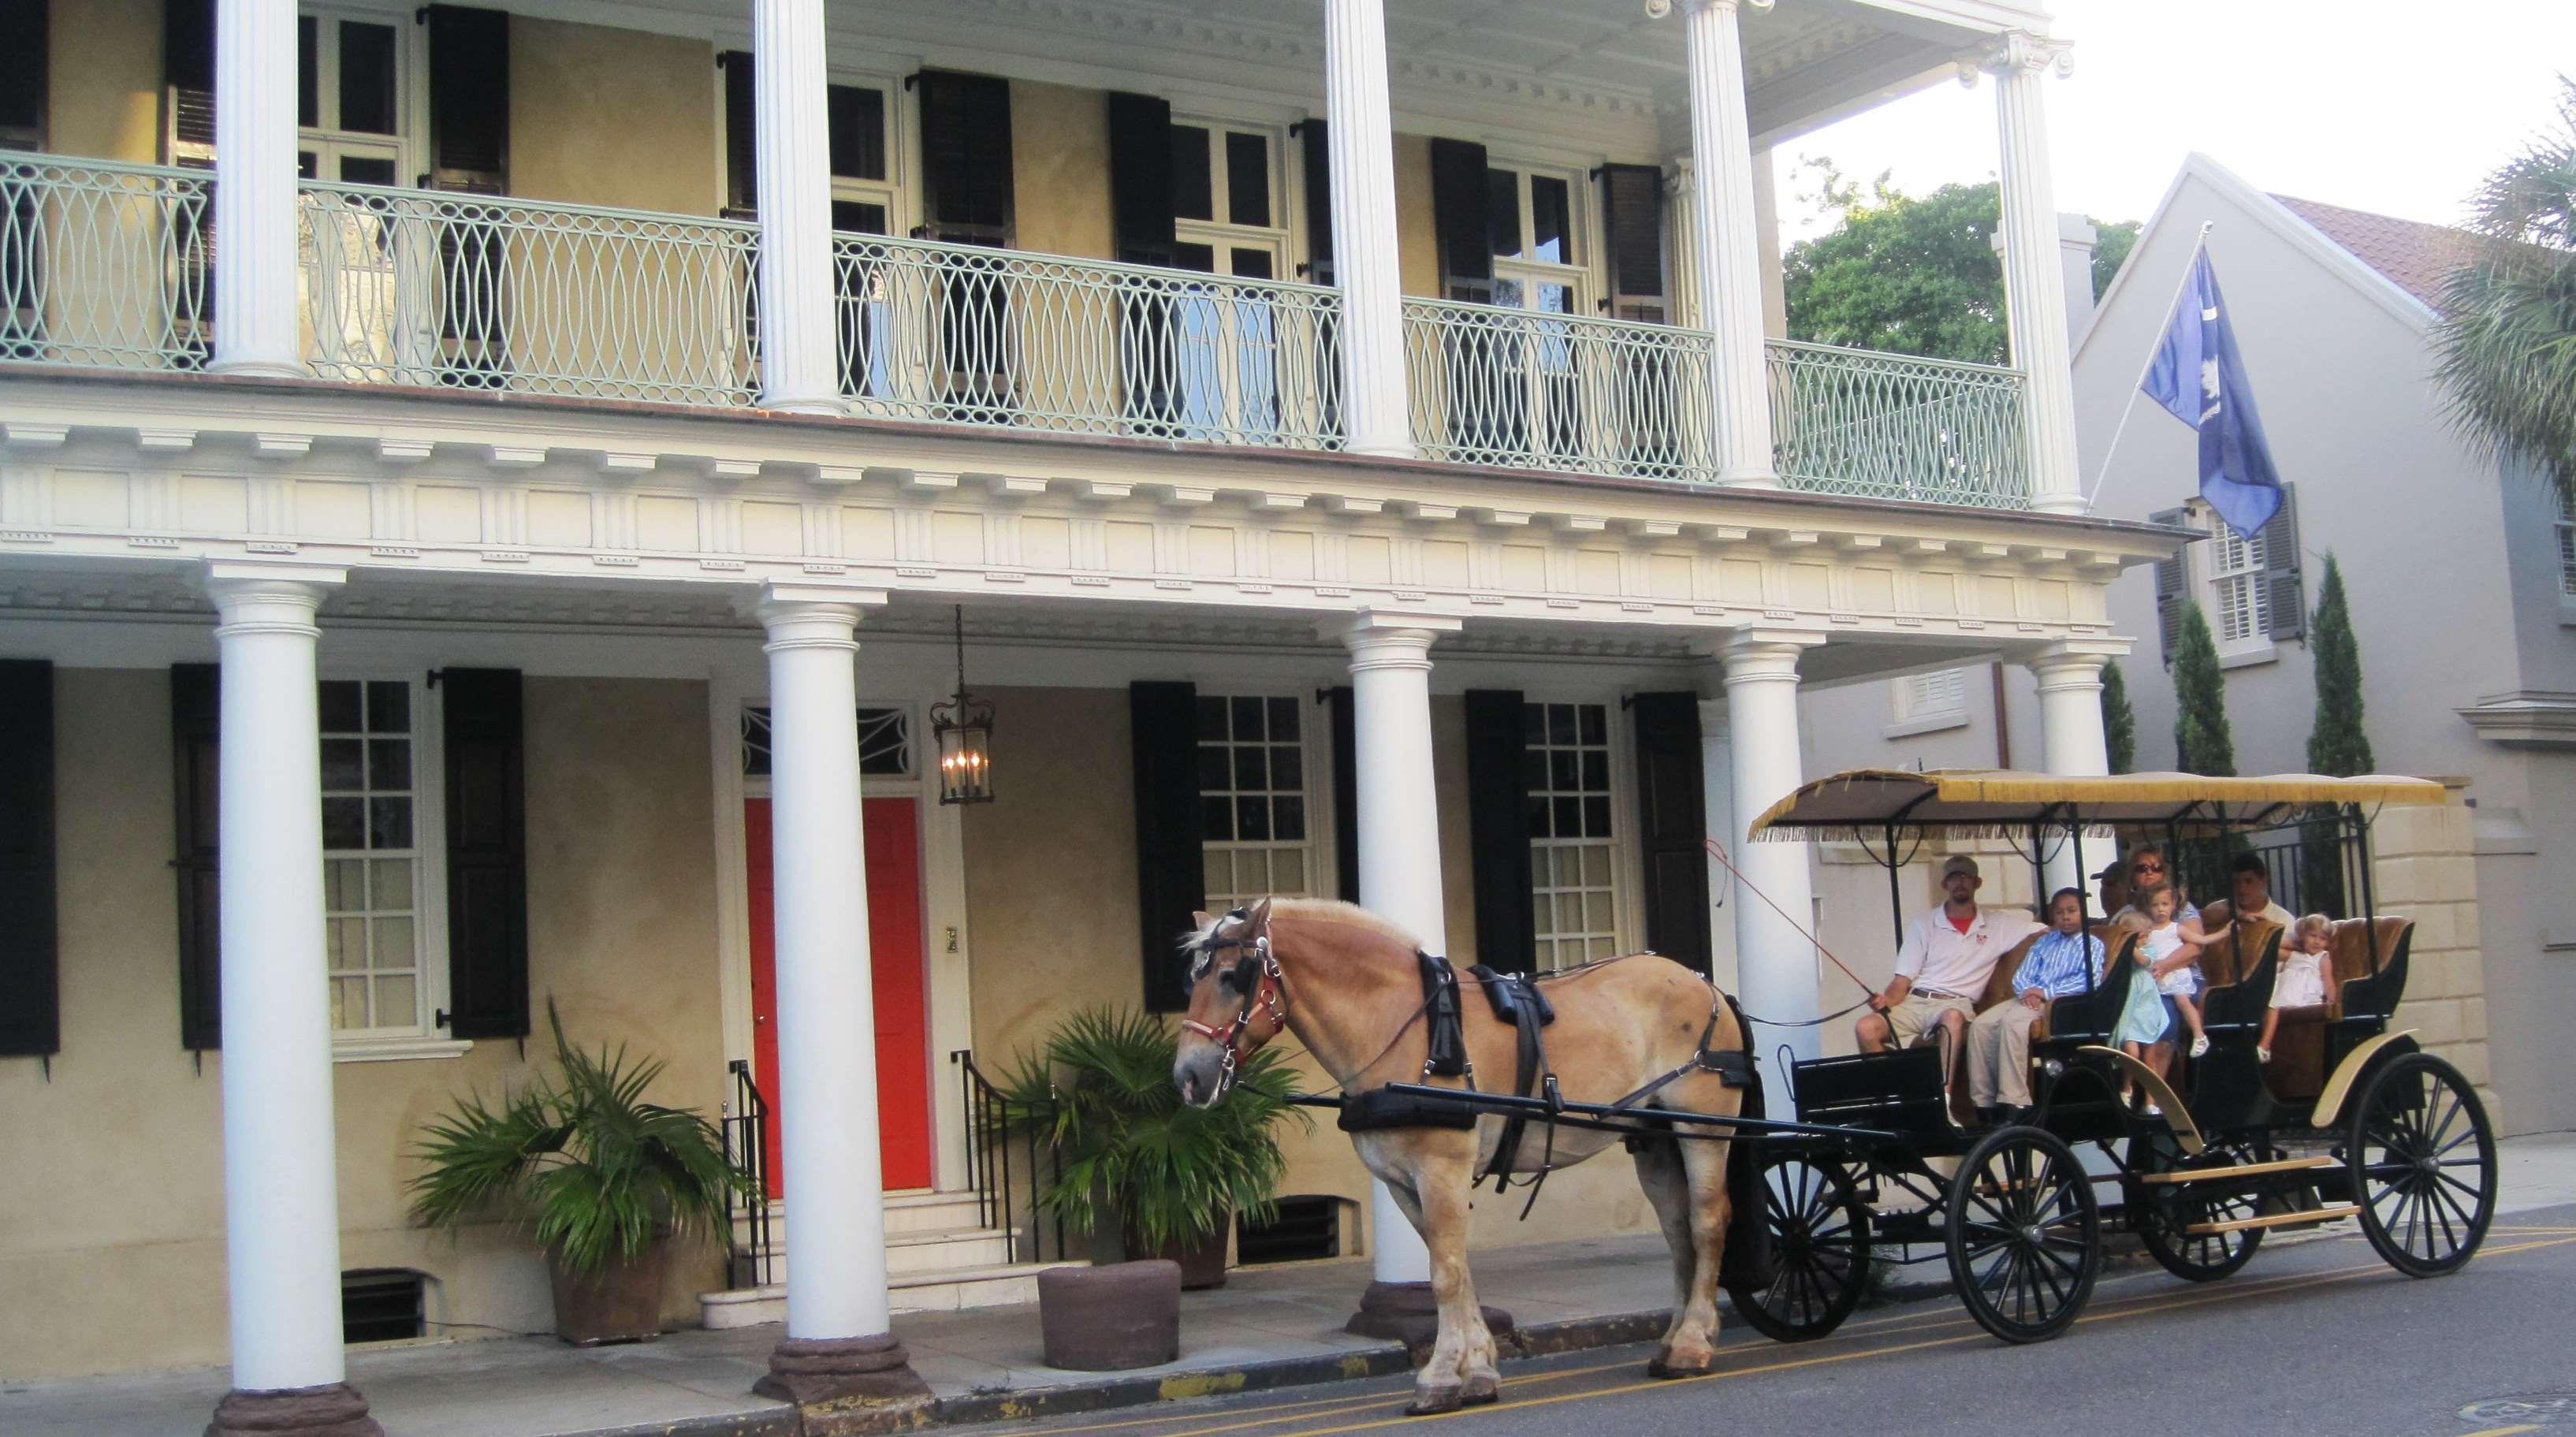 DoubleTree by Hilton Hotel & Suites Charleston - Historic District image 24